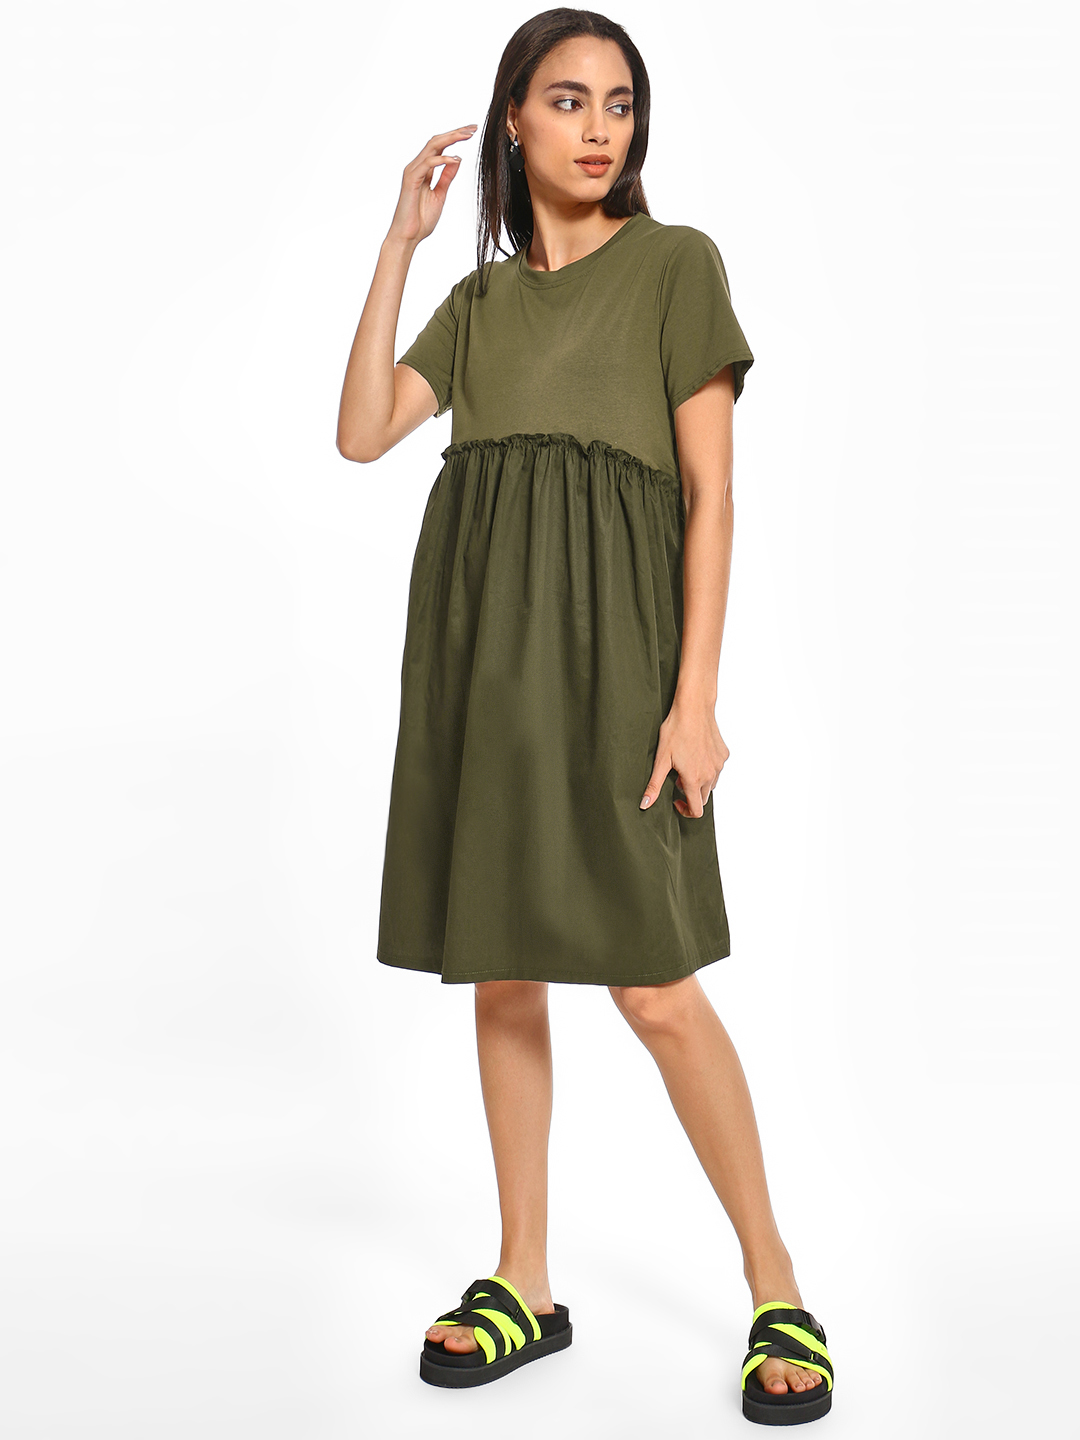 Origami Lily Green Twofer Ruffled Midi Dress 1